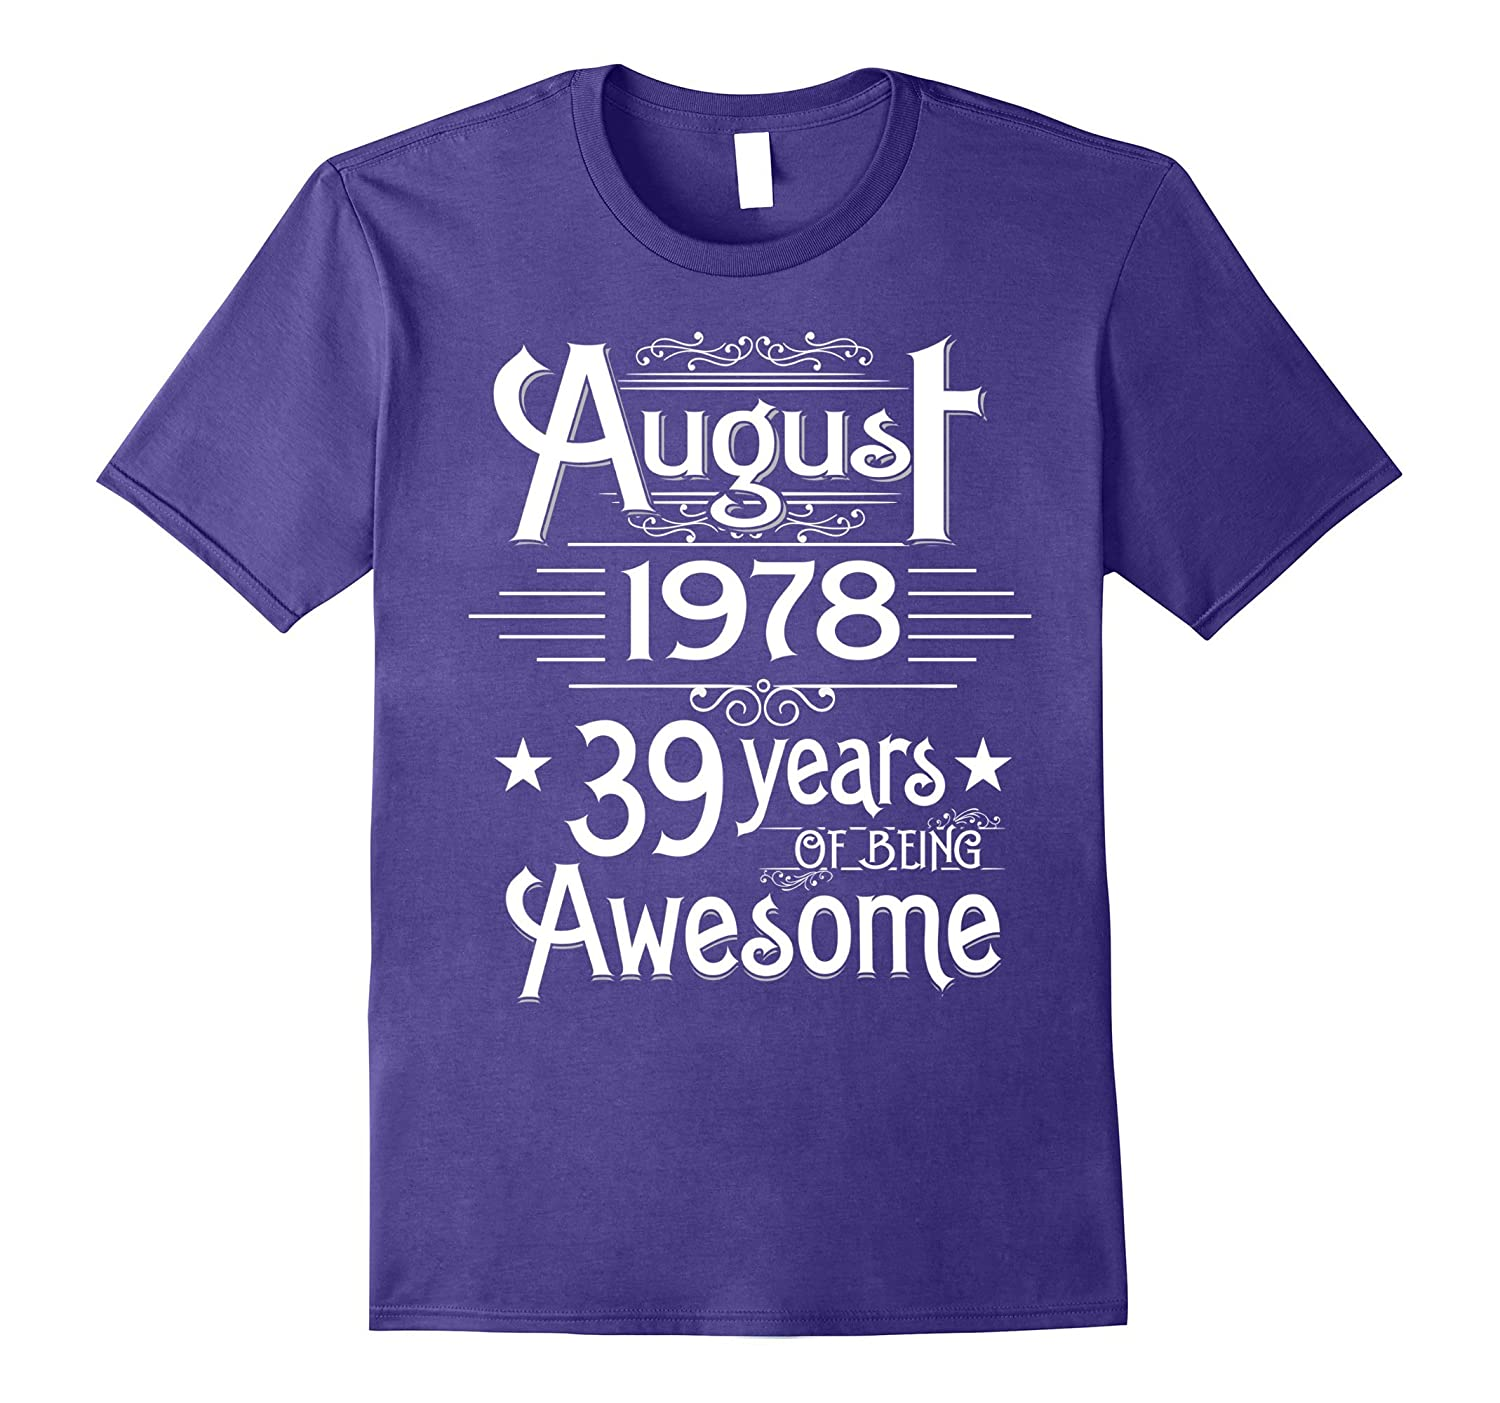 August 1978 39 Years Of Being Awesome T-shirt Born In August-Vaci